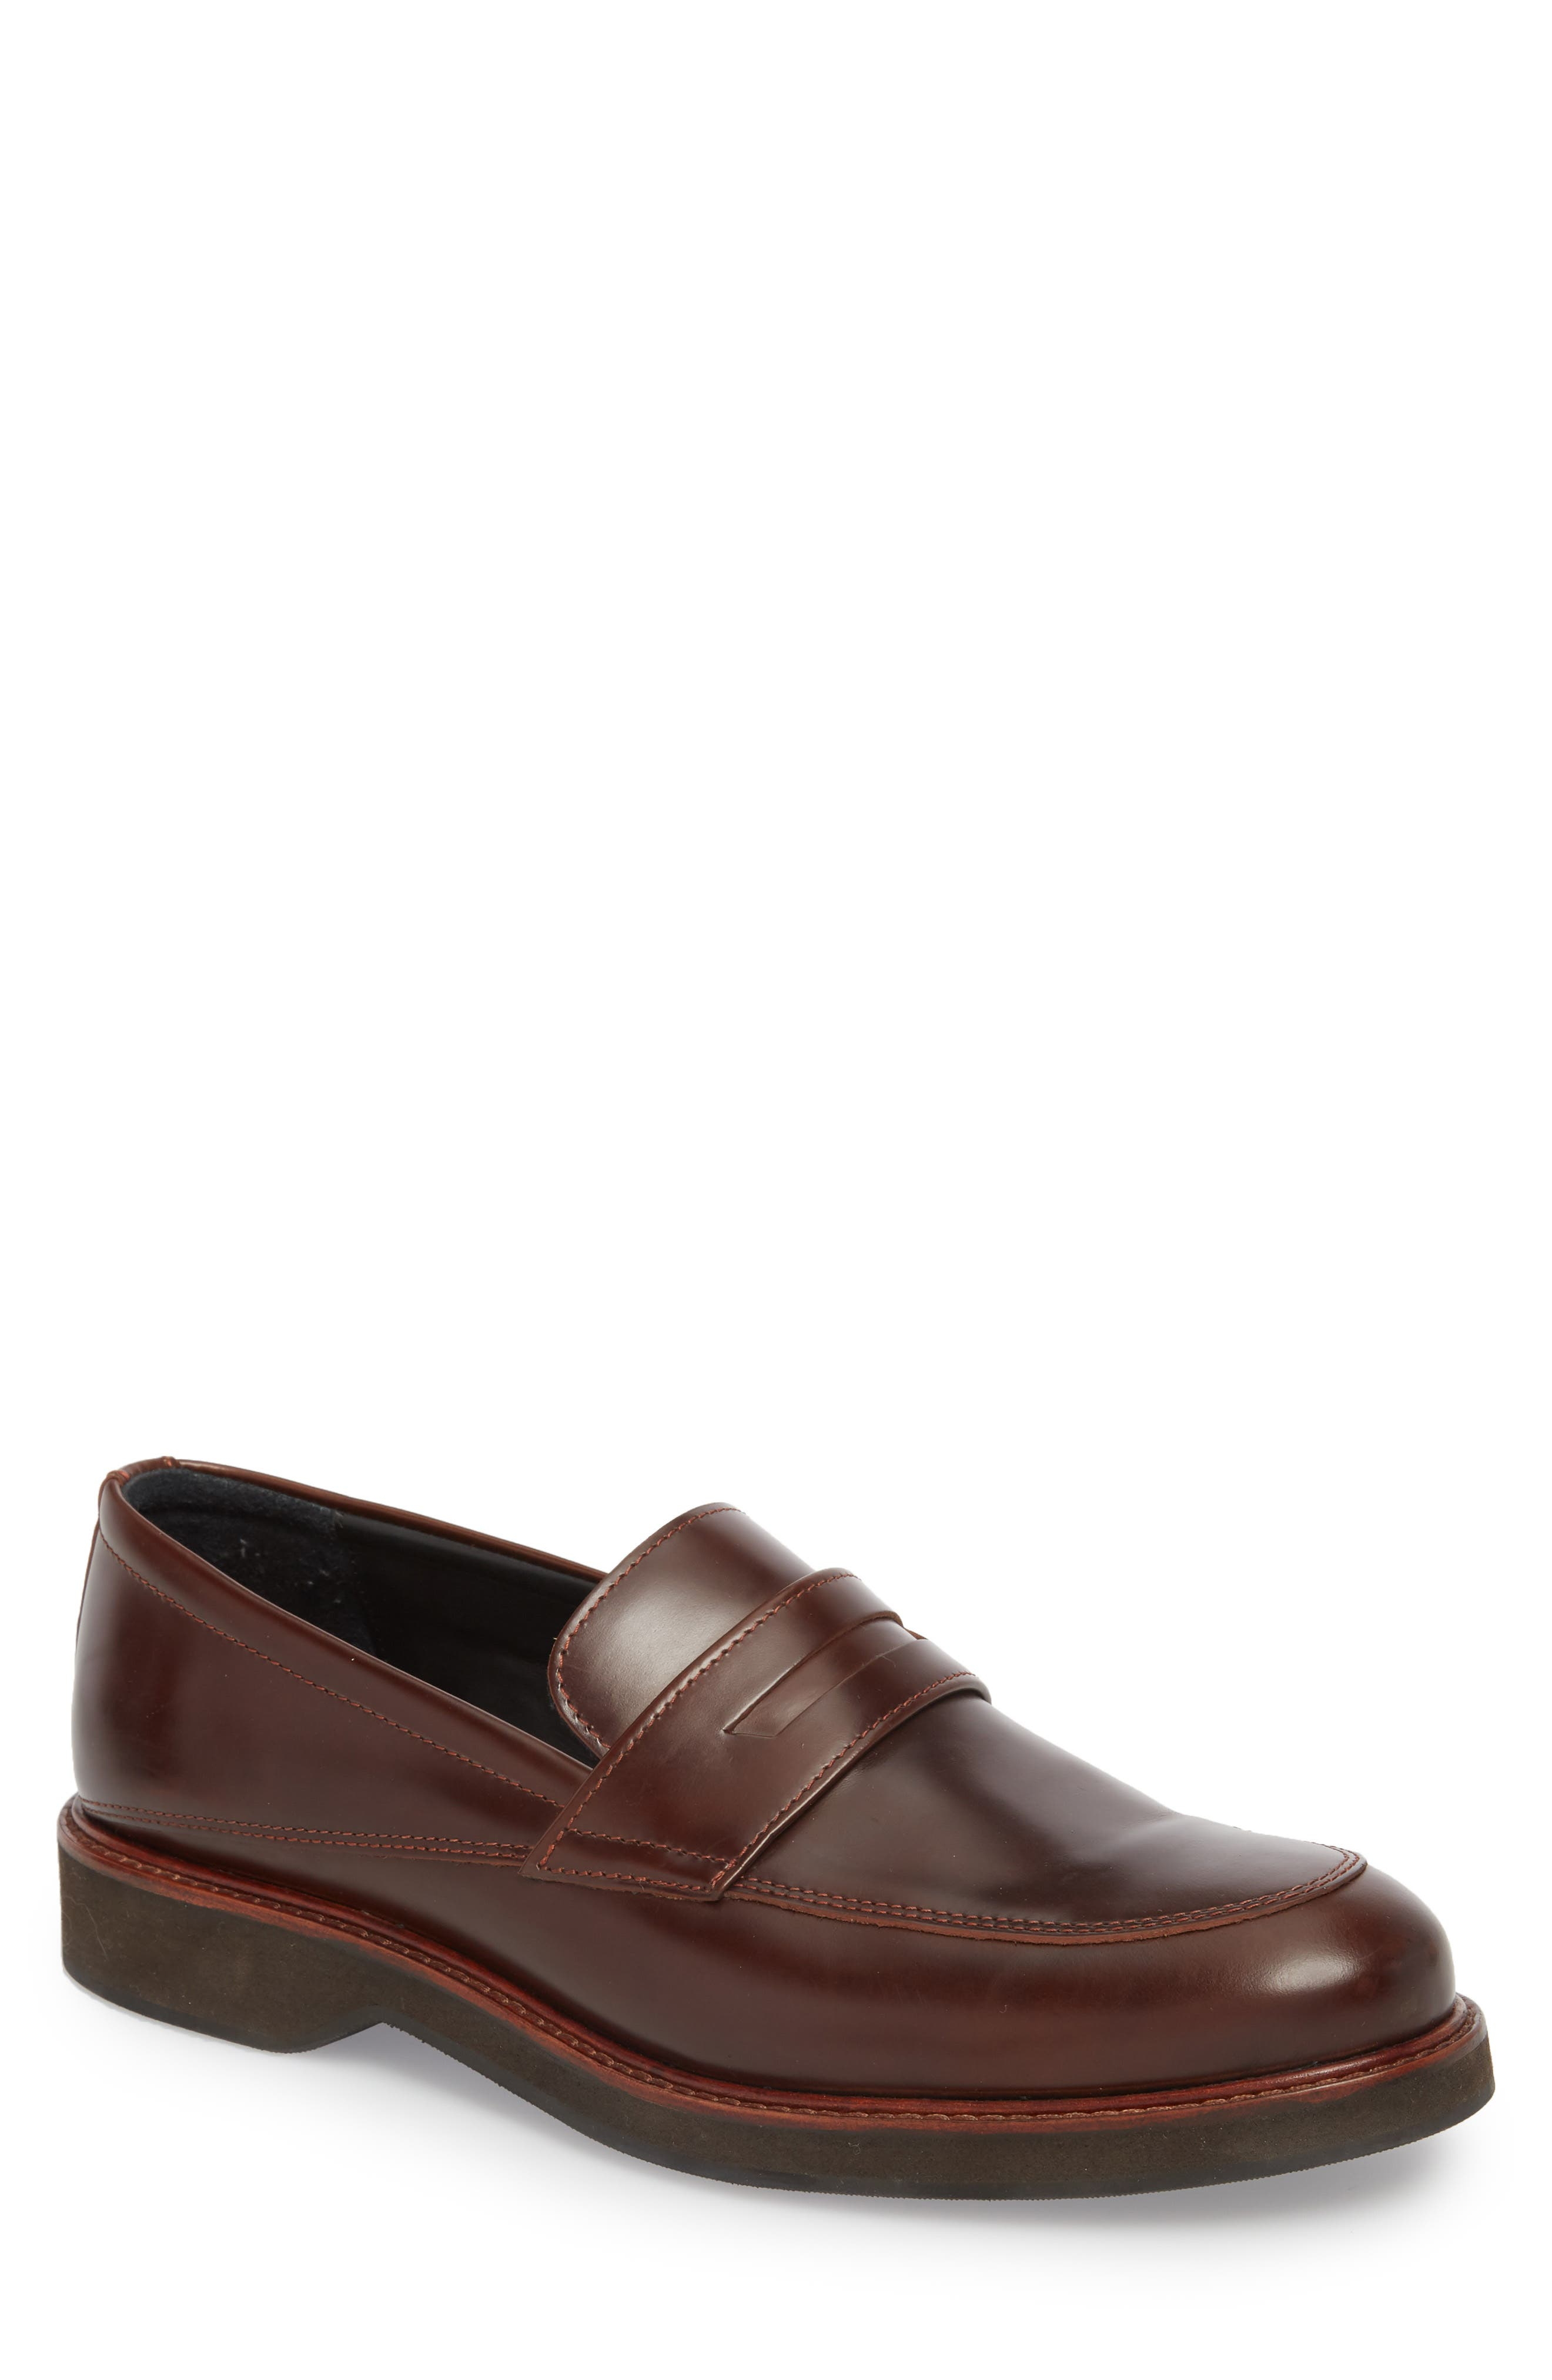 'Marcos' Loafer,                         Main,                         color, Multi Brown/ Brown